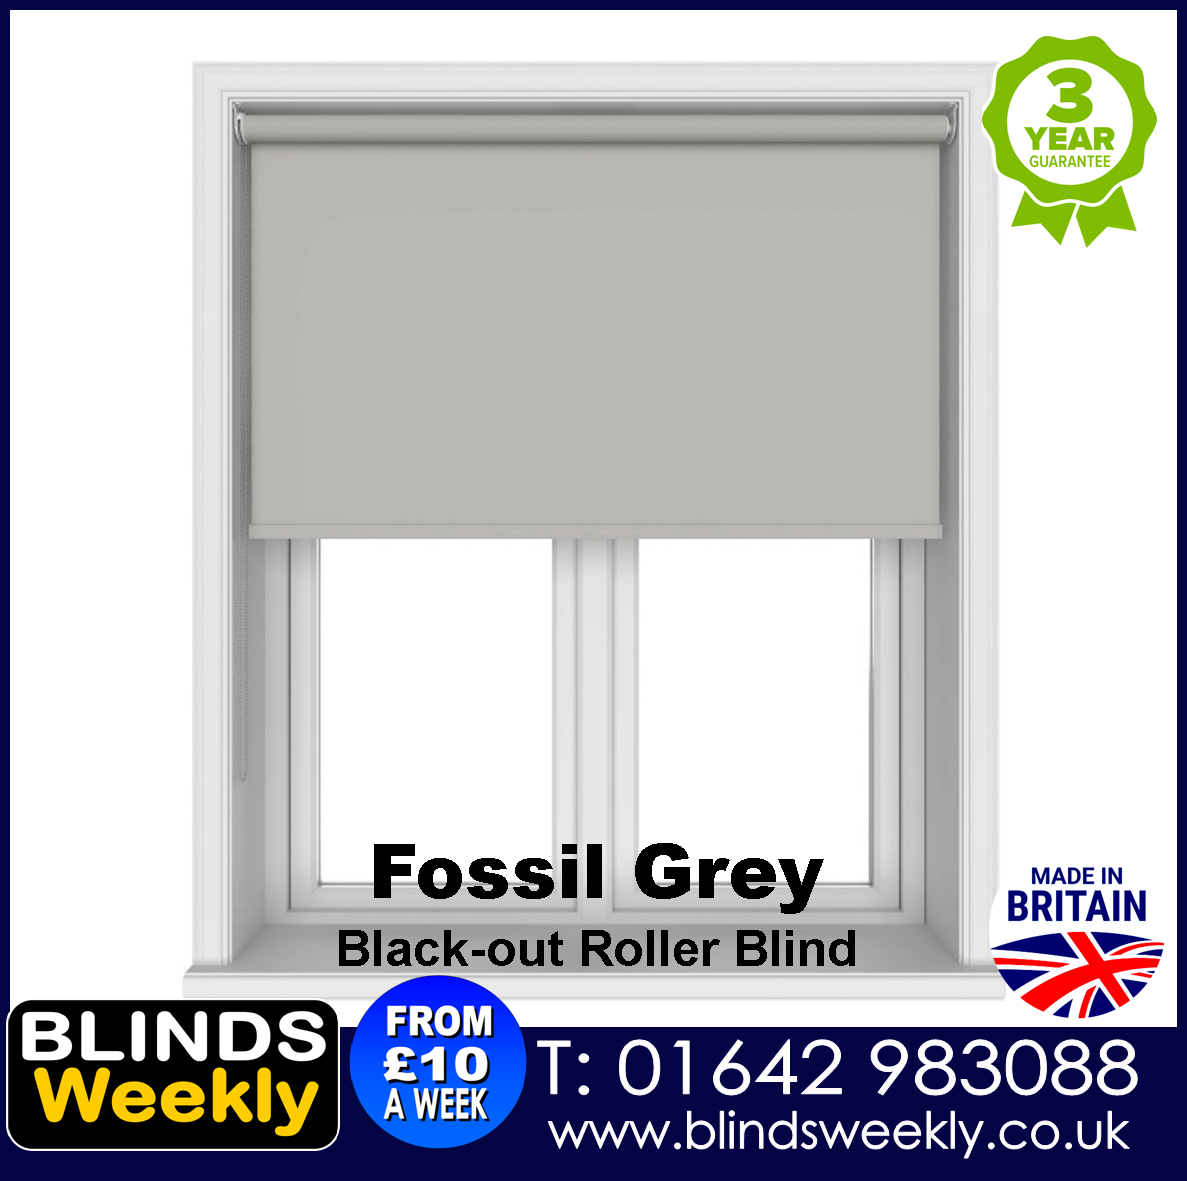 Blinds Weekly Blackout Roller Blind - FOSSIL GREY